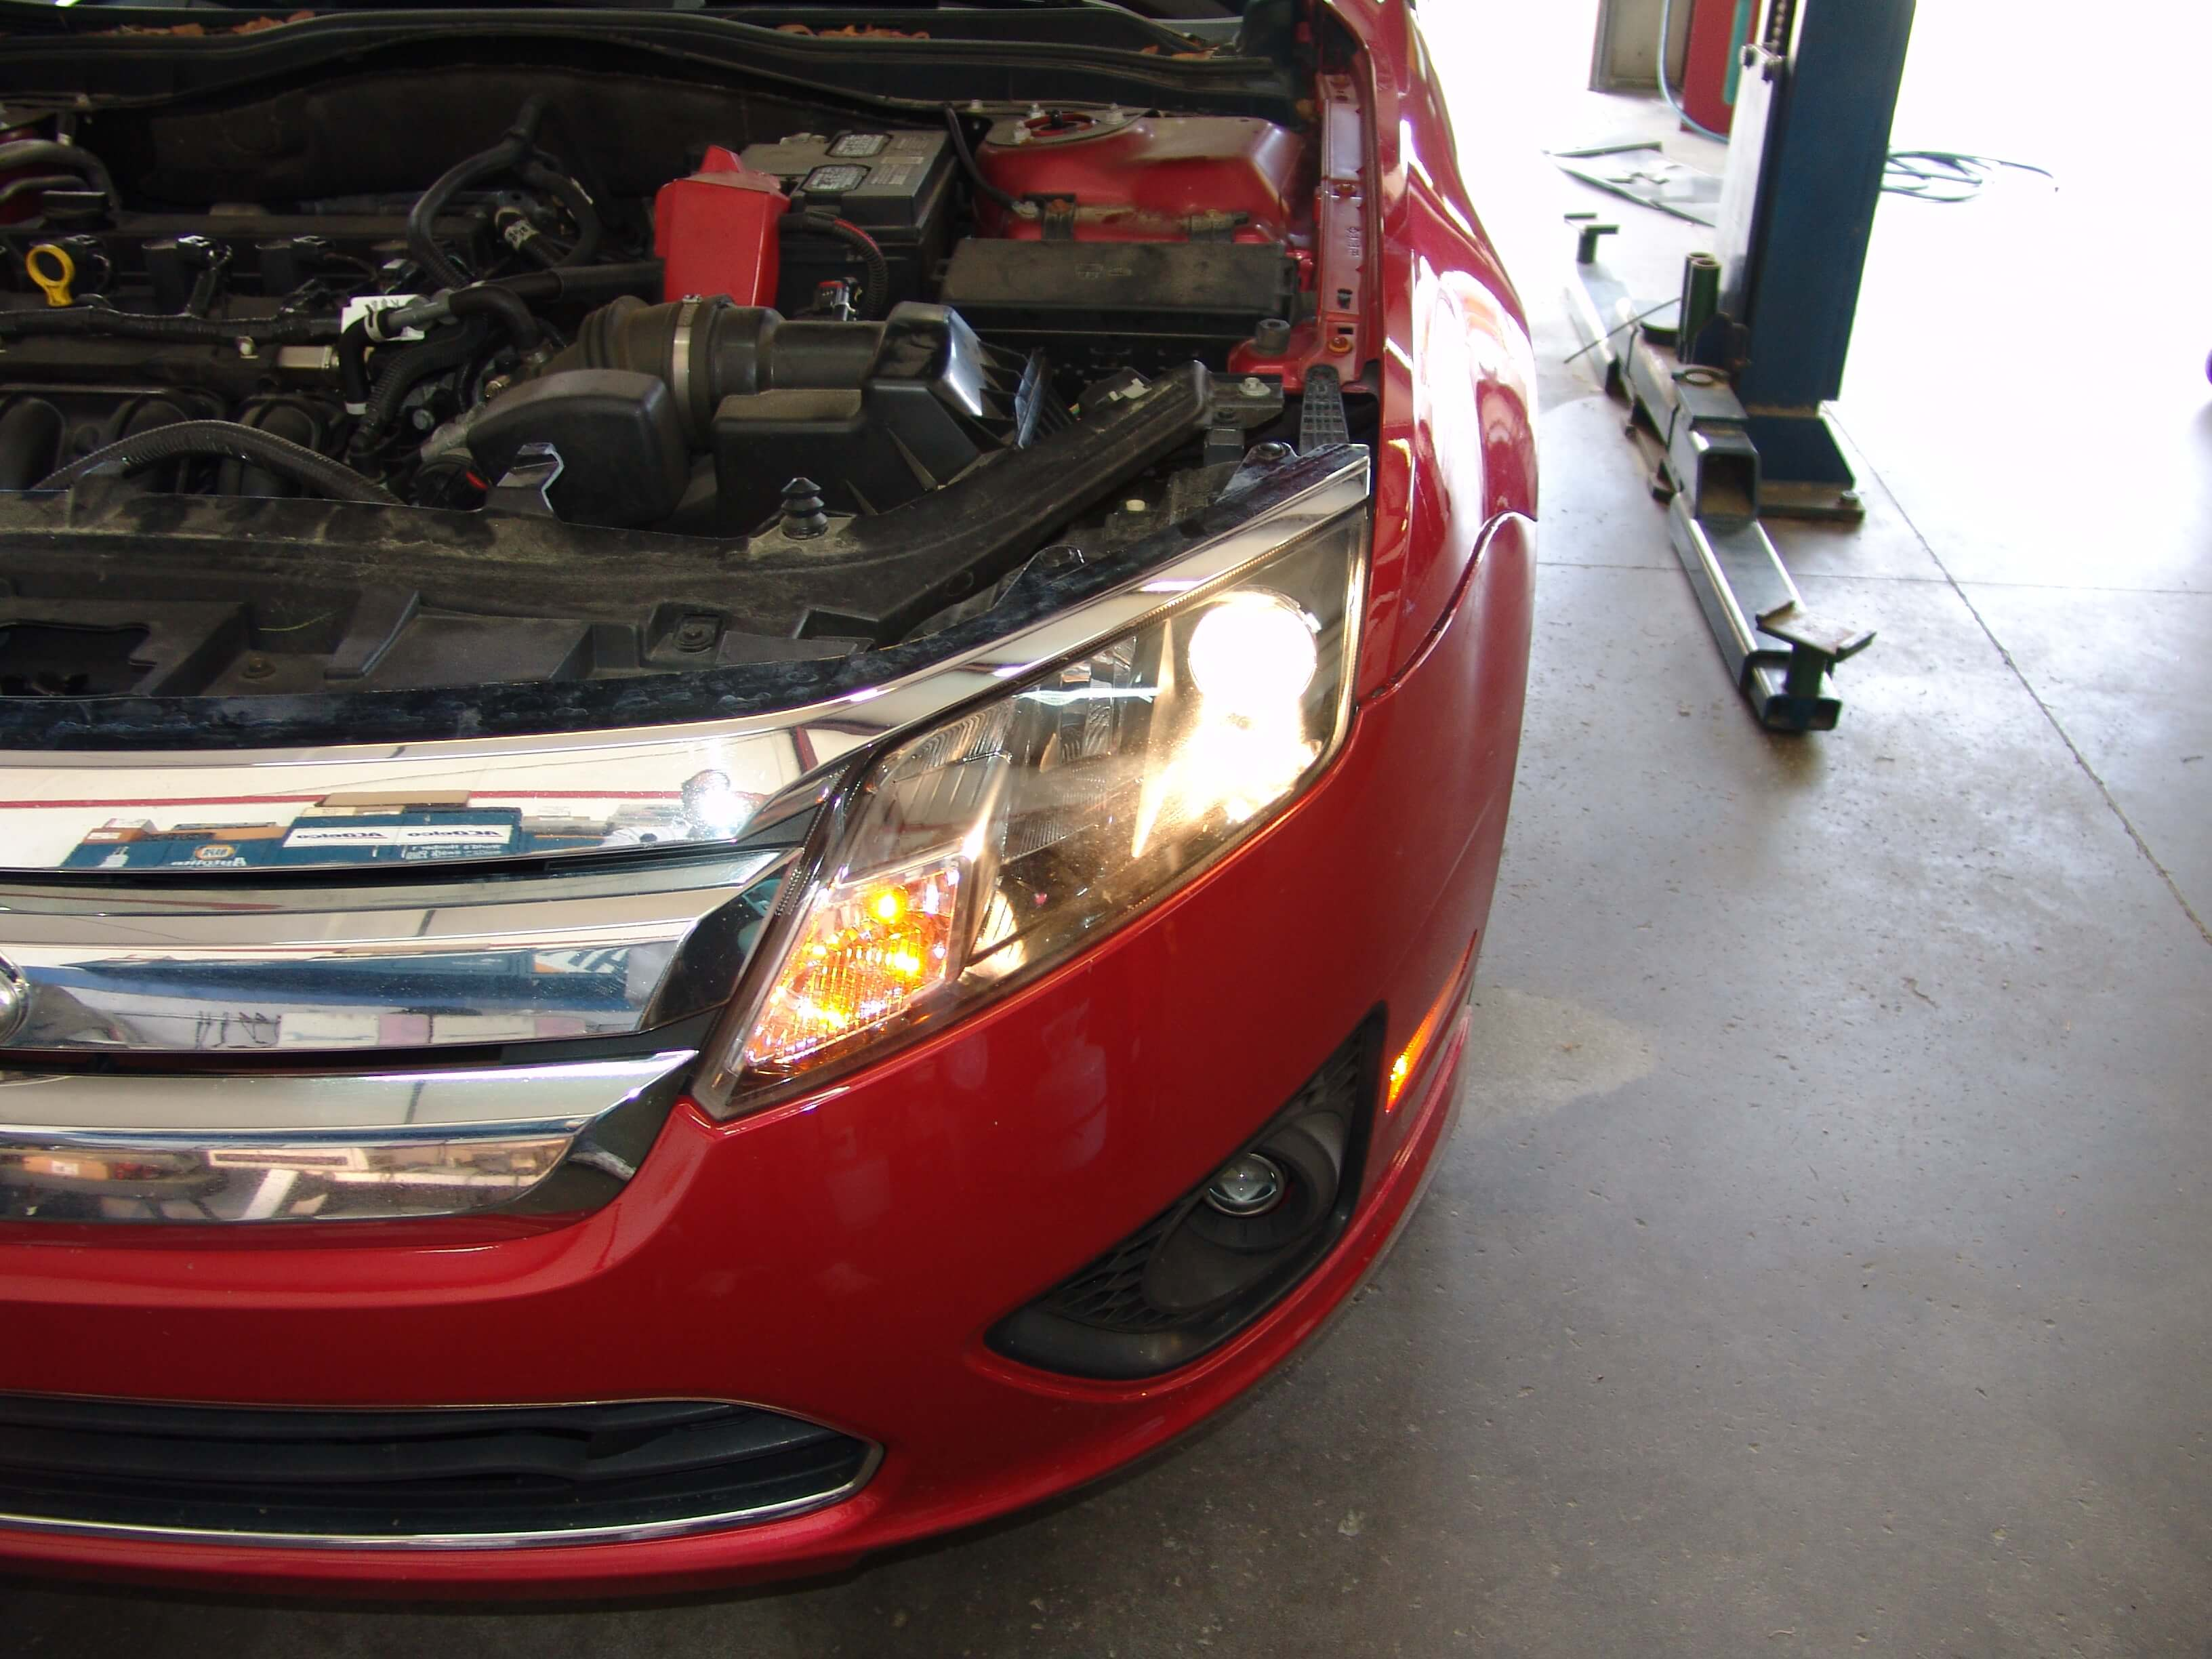 Sparkys Answers - 2012 Ford Fusion Low Beam Headlight Does